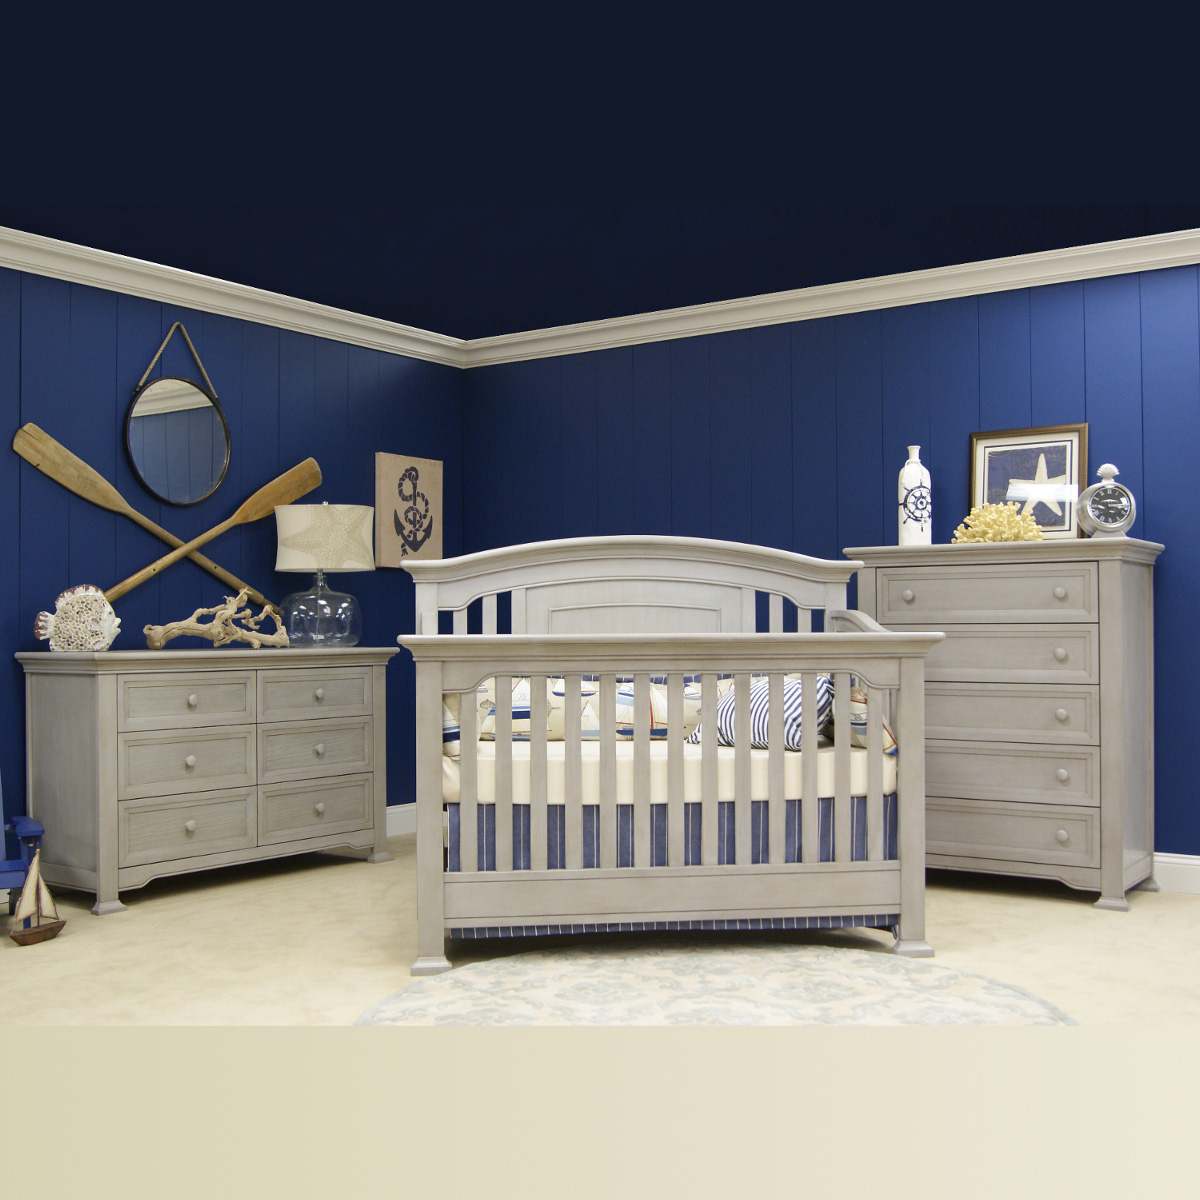 Munire 3 Piece Nursery Set Medford Lifetime Crib 6 Drawer Double Dresser And 5 Chest In Gray Free Shipping